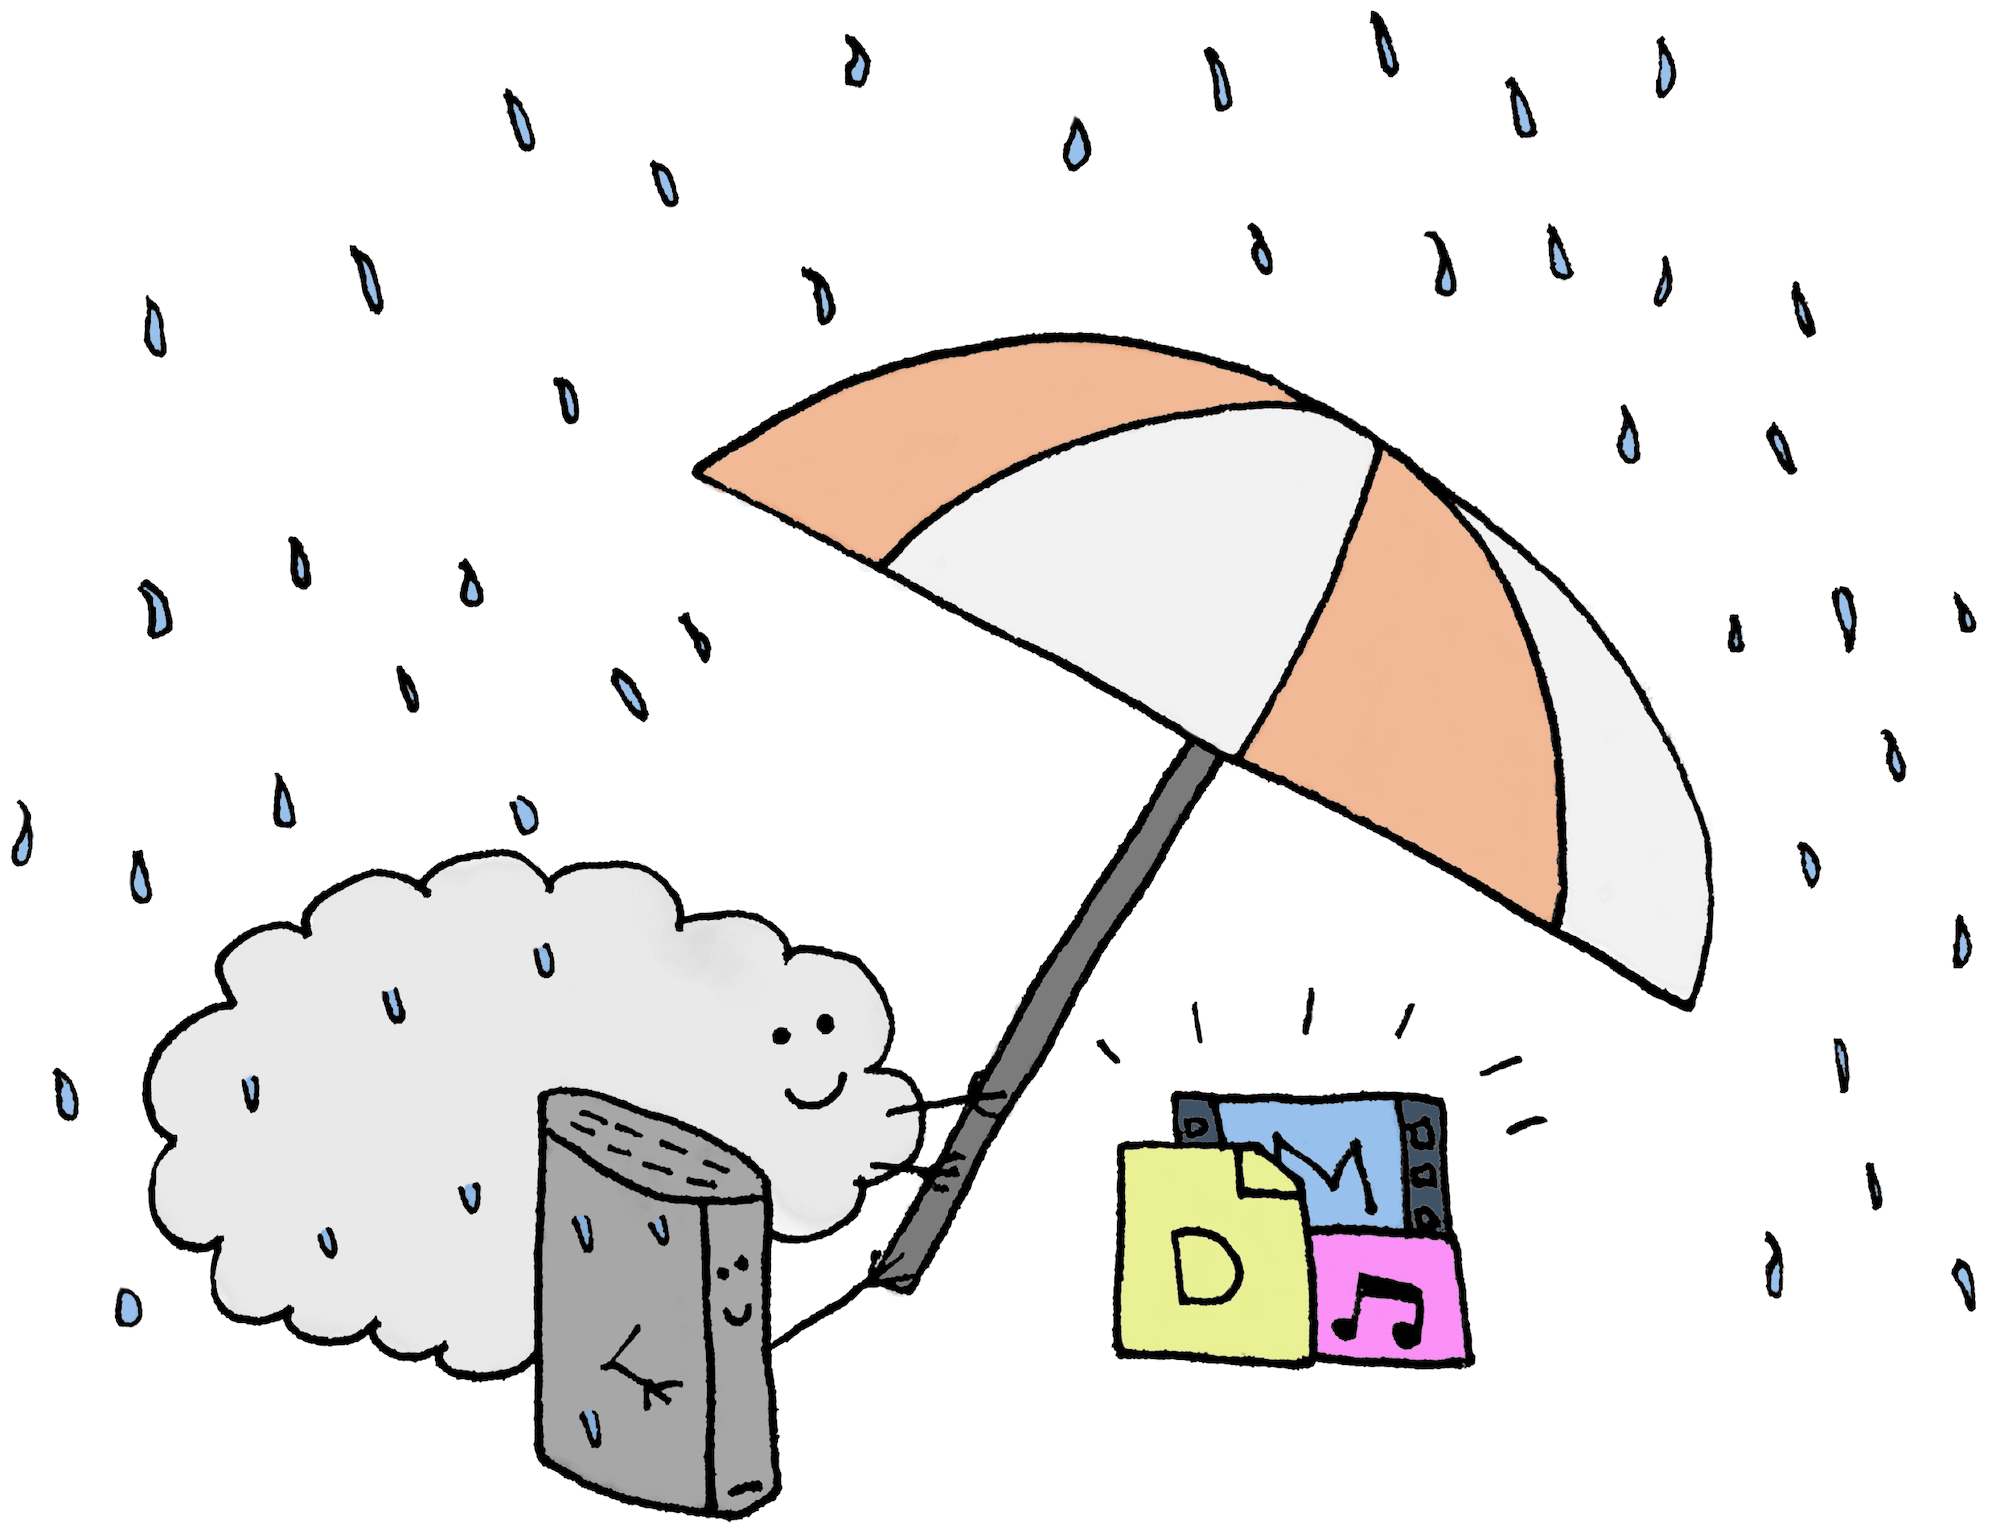 A cartoon of our smiling cloud and external hard drive characters from before, this time shielding the files from rain using a massive umbrella